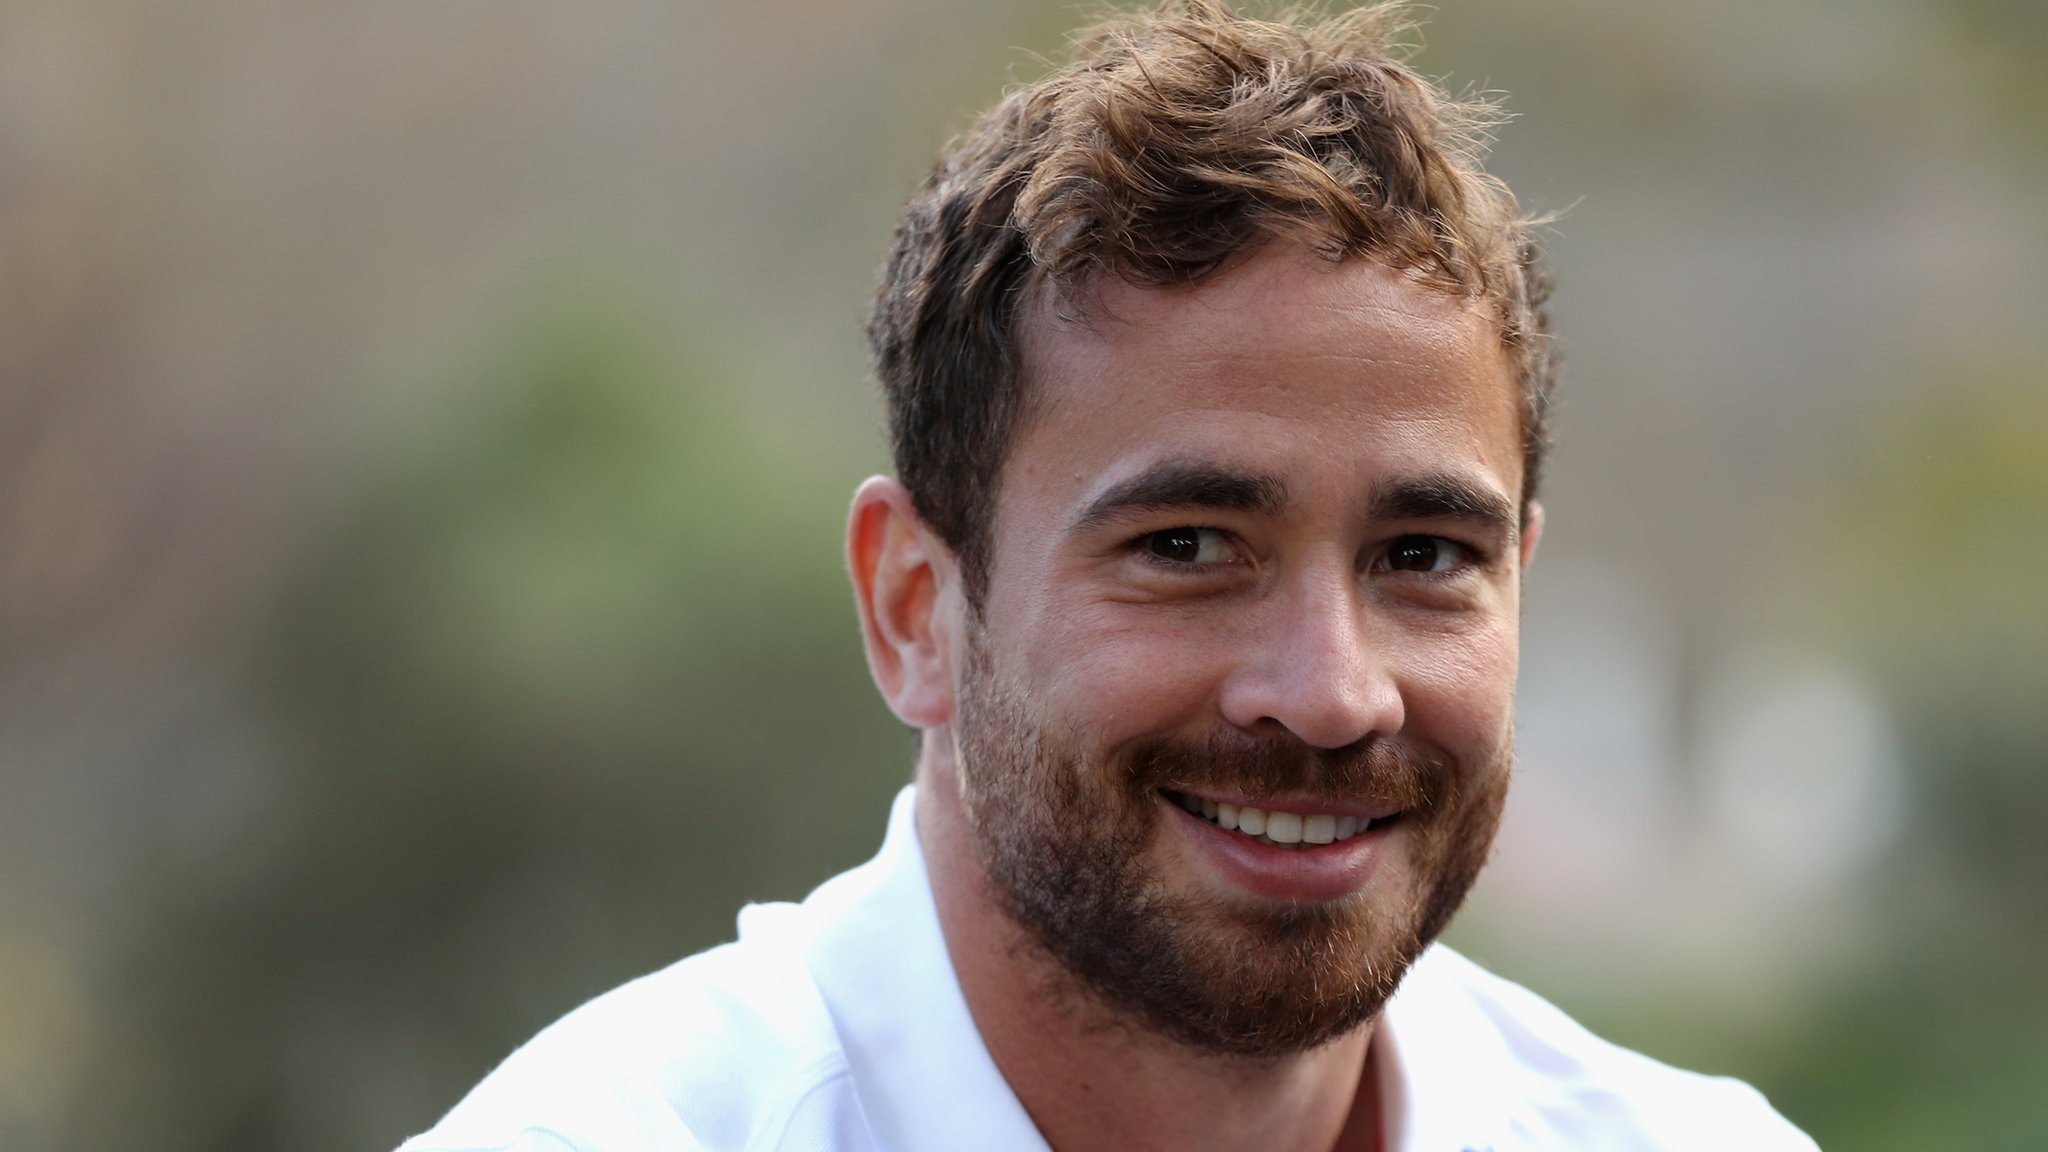 'It's always been about playing for England' - the second coming of Cipriani